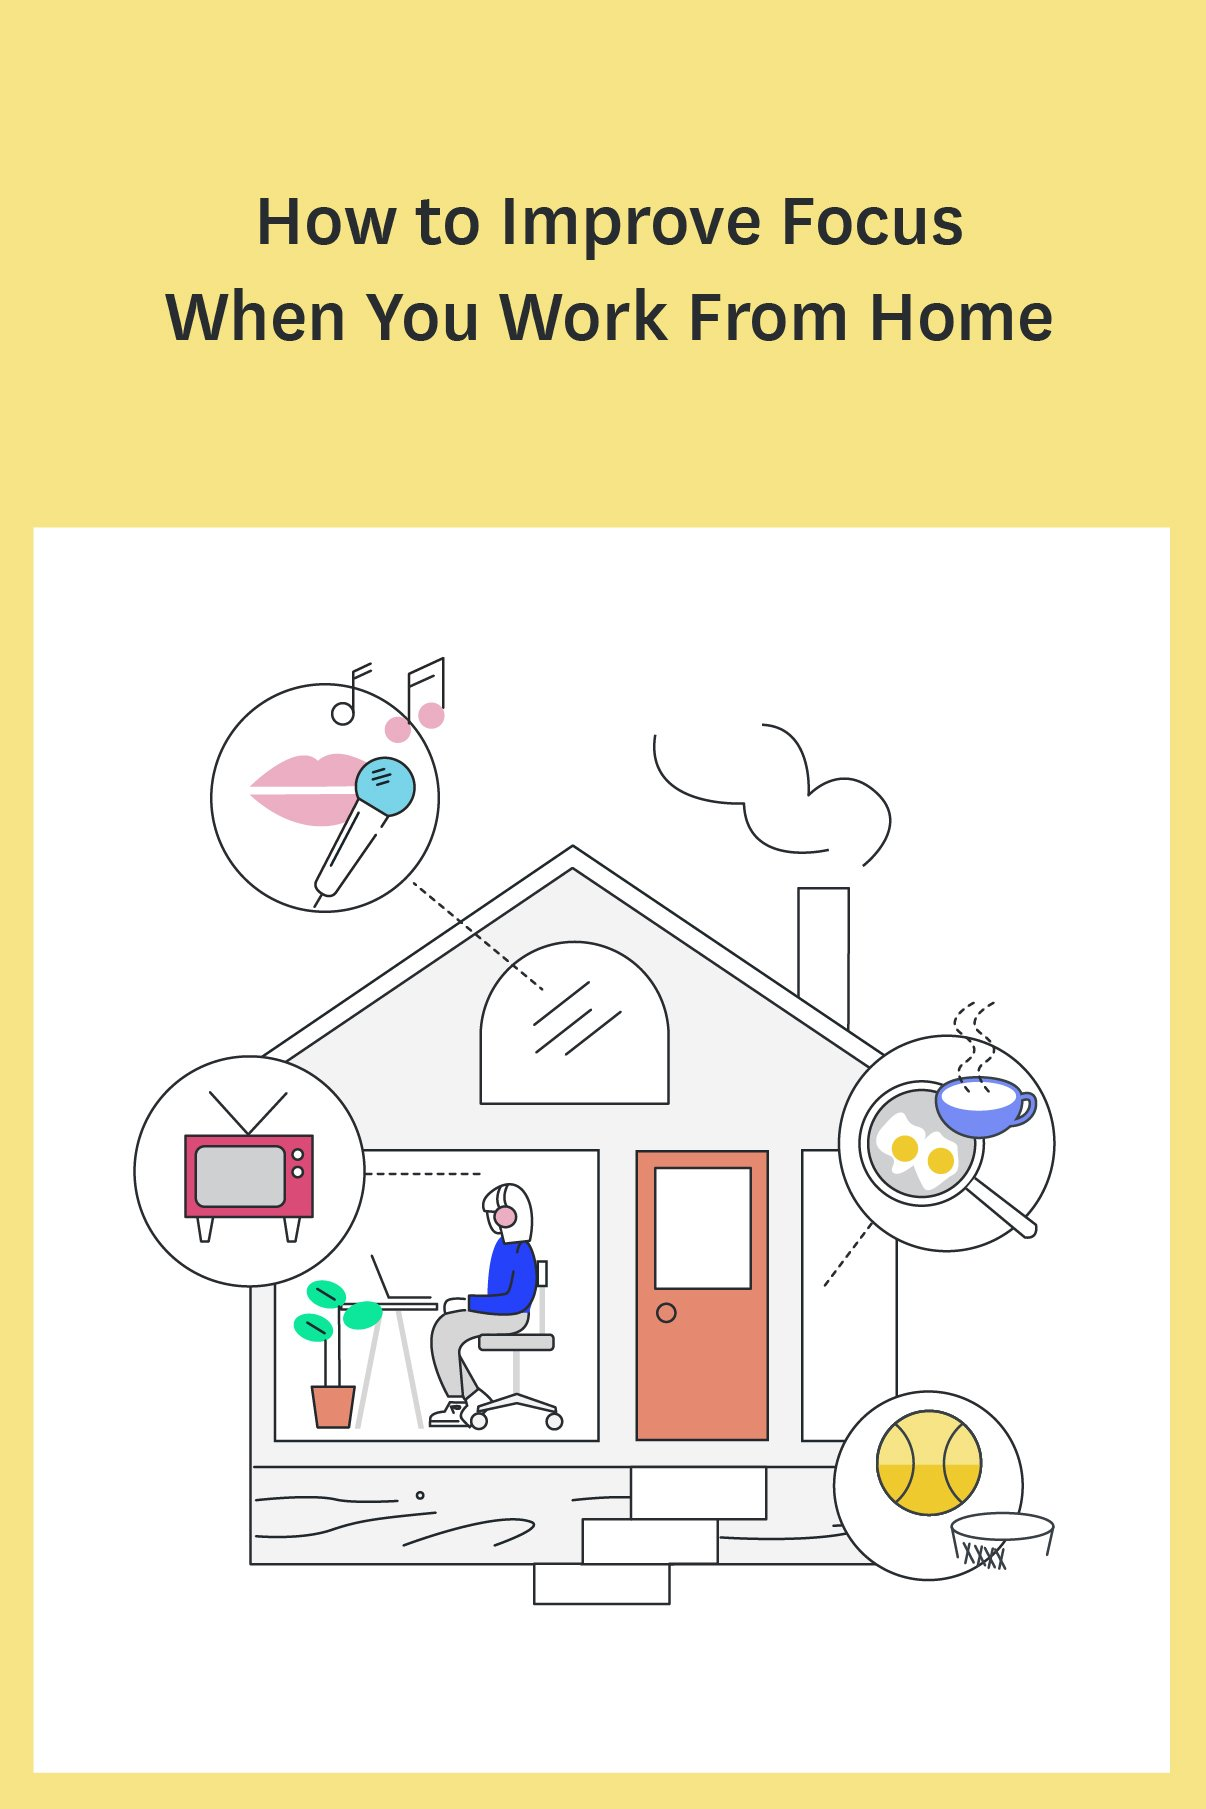 It's so easy to get distracted or interrupted when you work from home. Here's how to improve your focus in 8 easy steps.